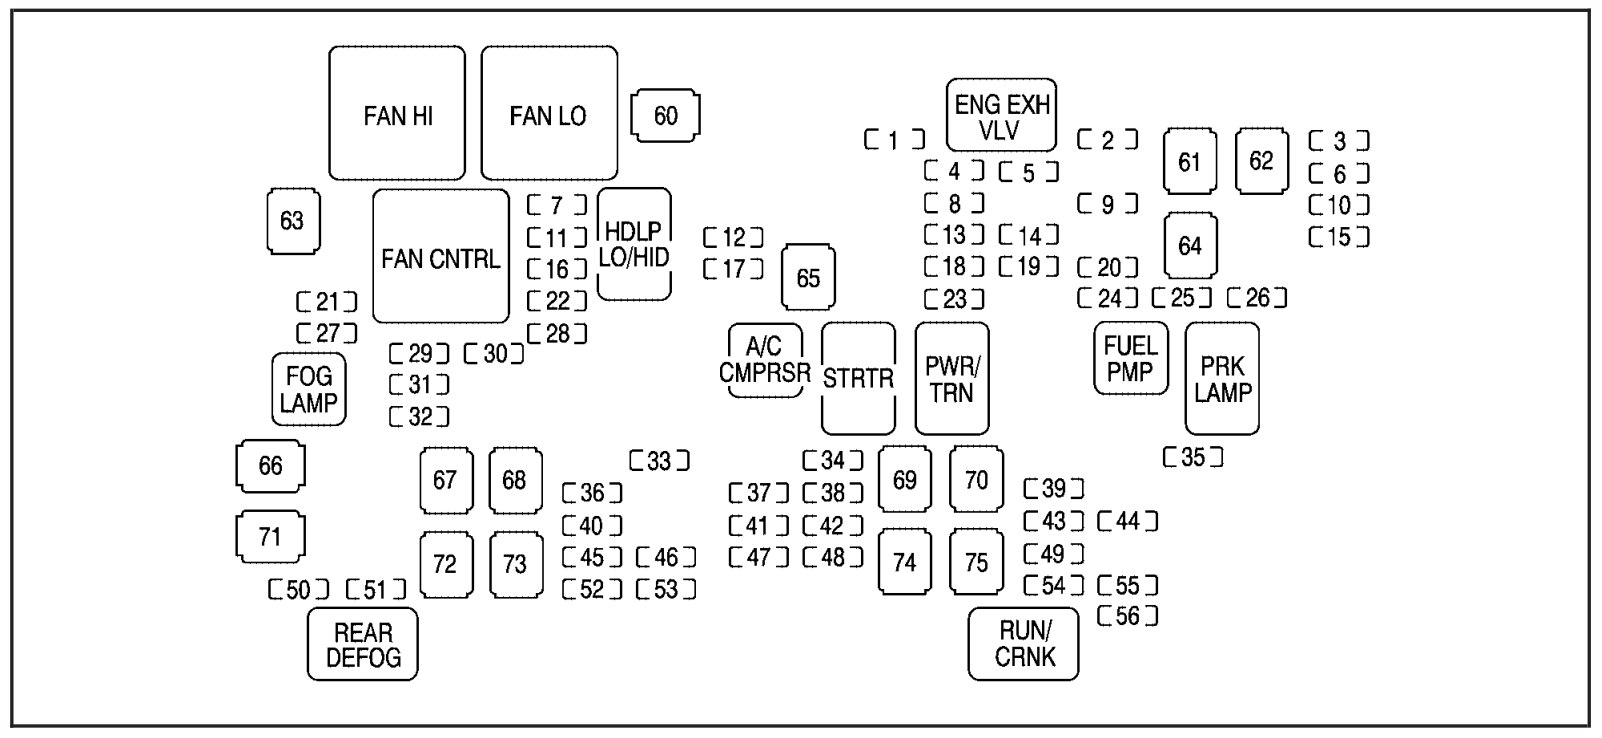 Chevrolet Suburban 2007 Fuse Box Diagram Auto Genius 1991 Toyota Previa Engine Compartment